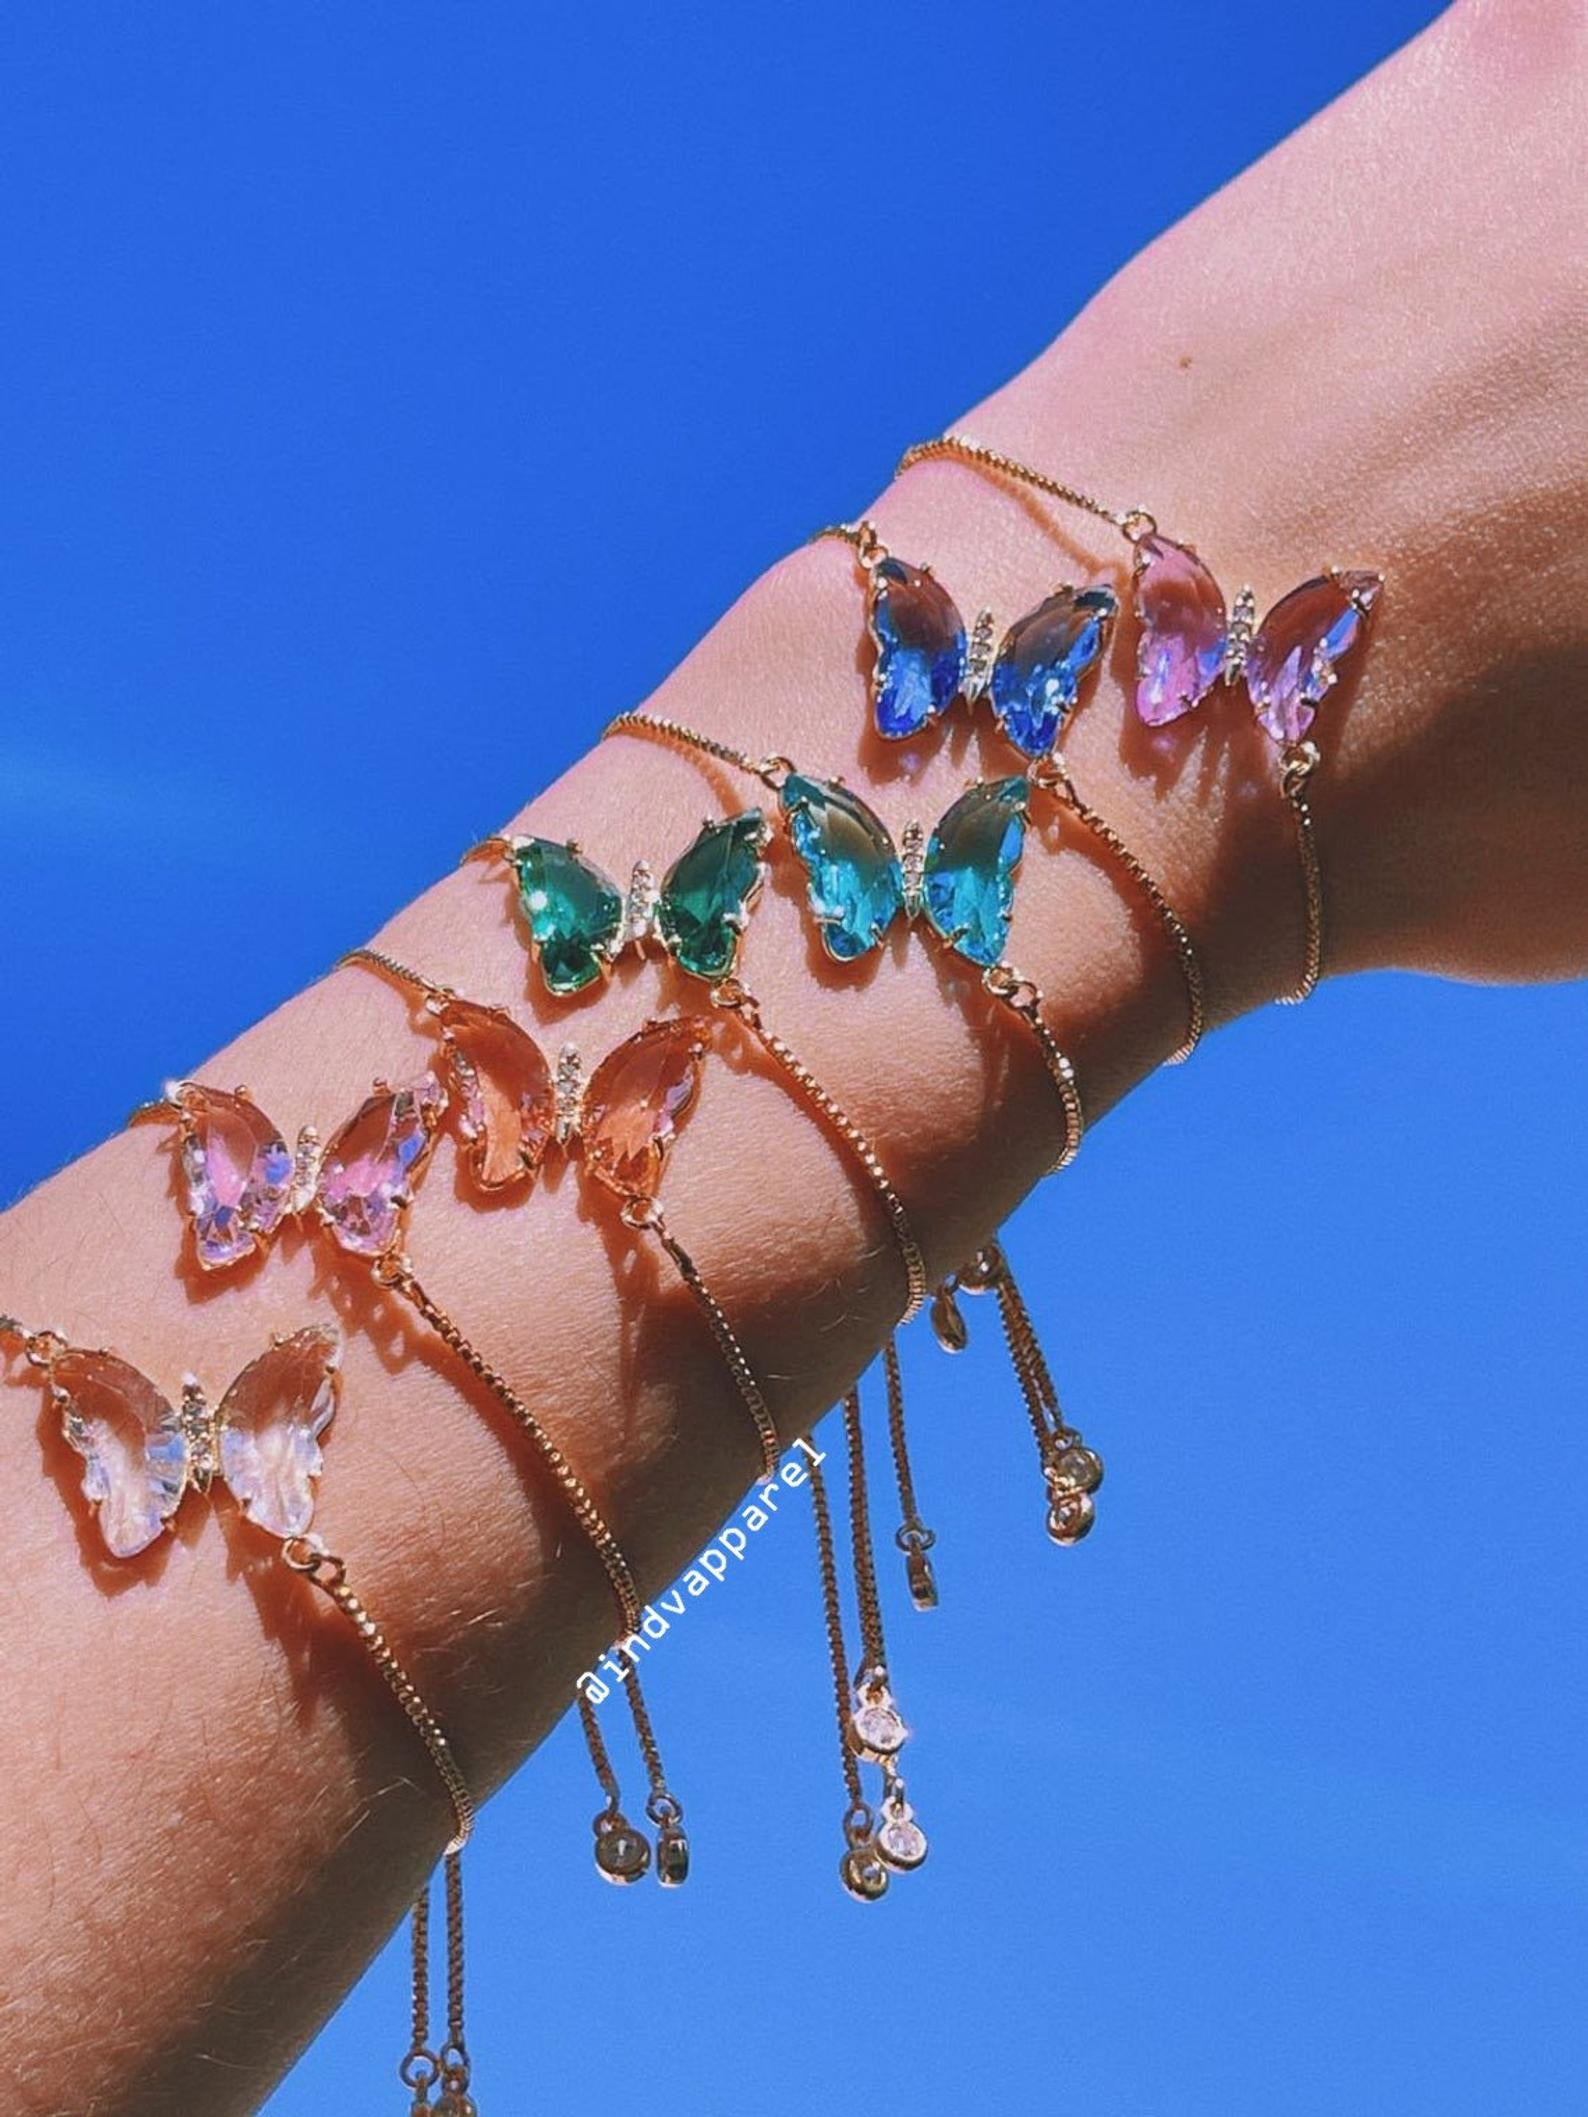 model's arm wearing tons of bracelets in different colors